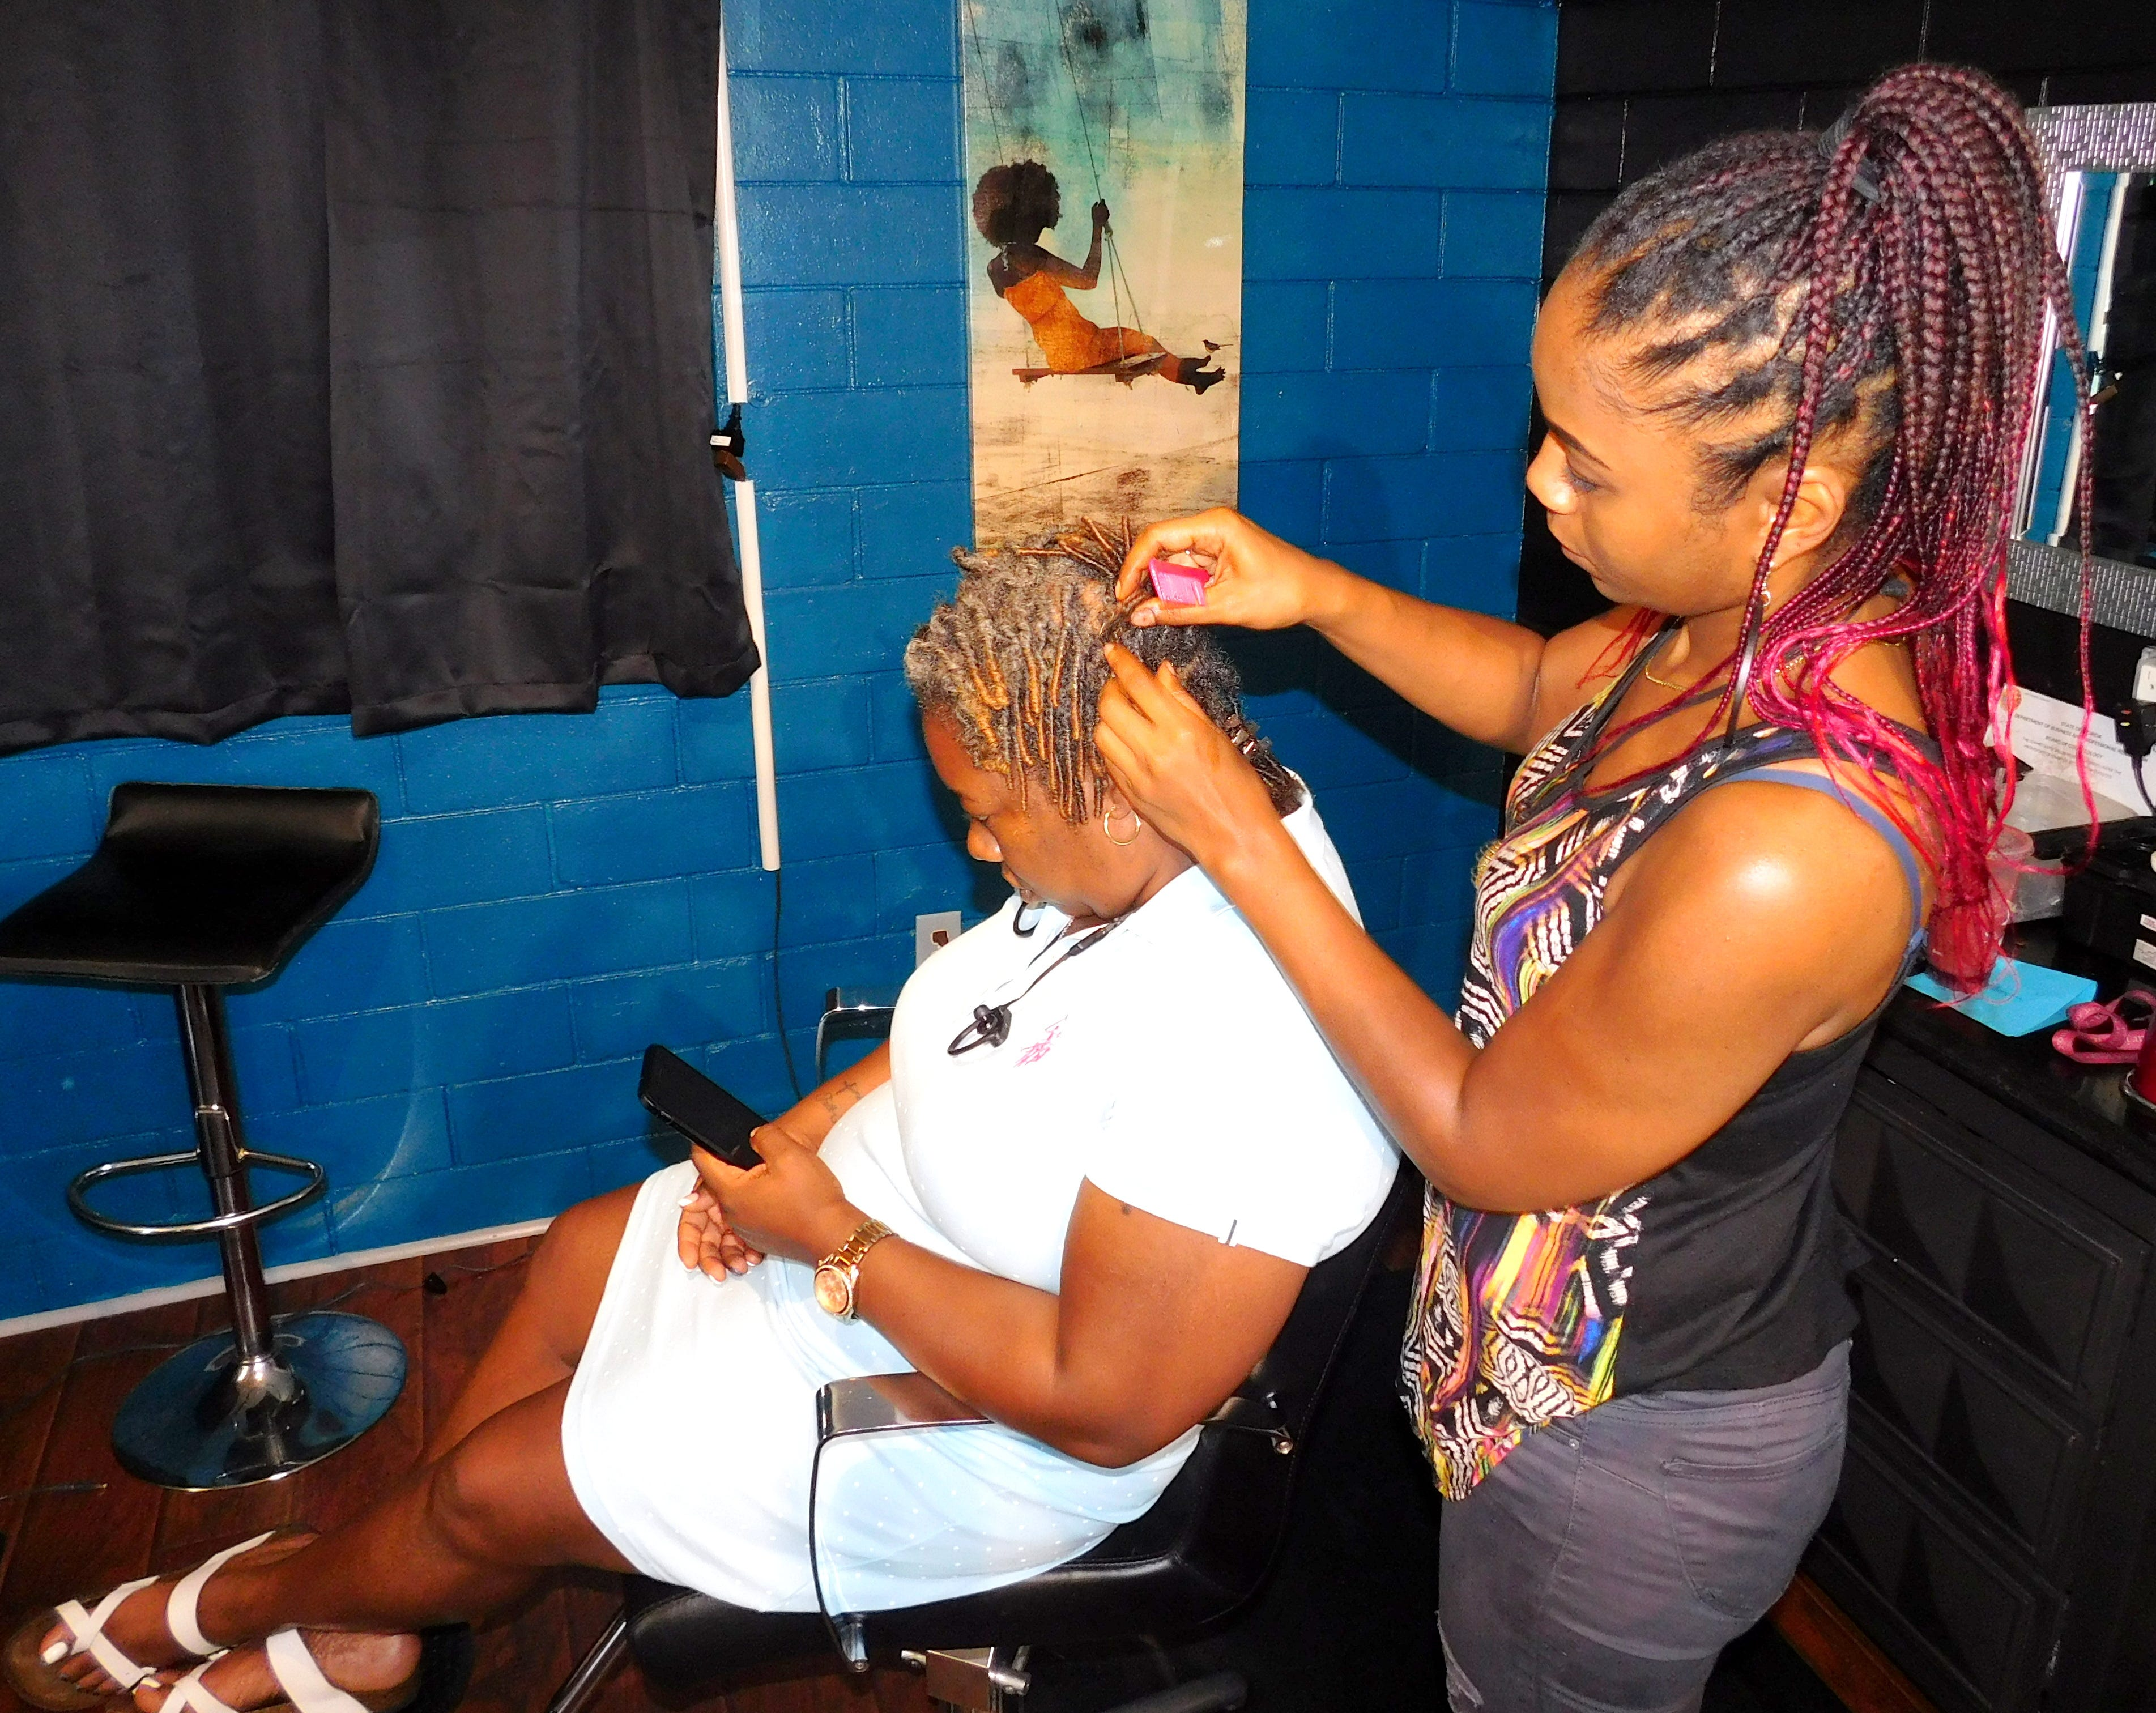 A Florida bill would outlaw 'natural' hair discrimination against Black people. It likely won't even get a hearing. 2